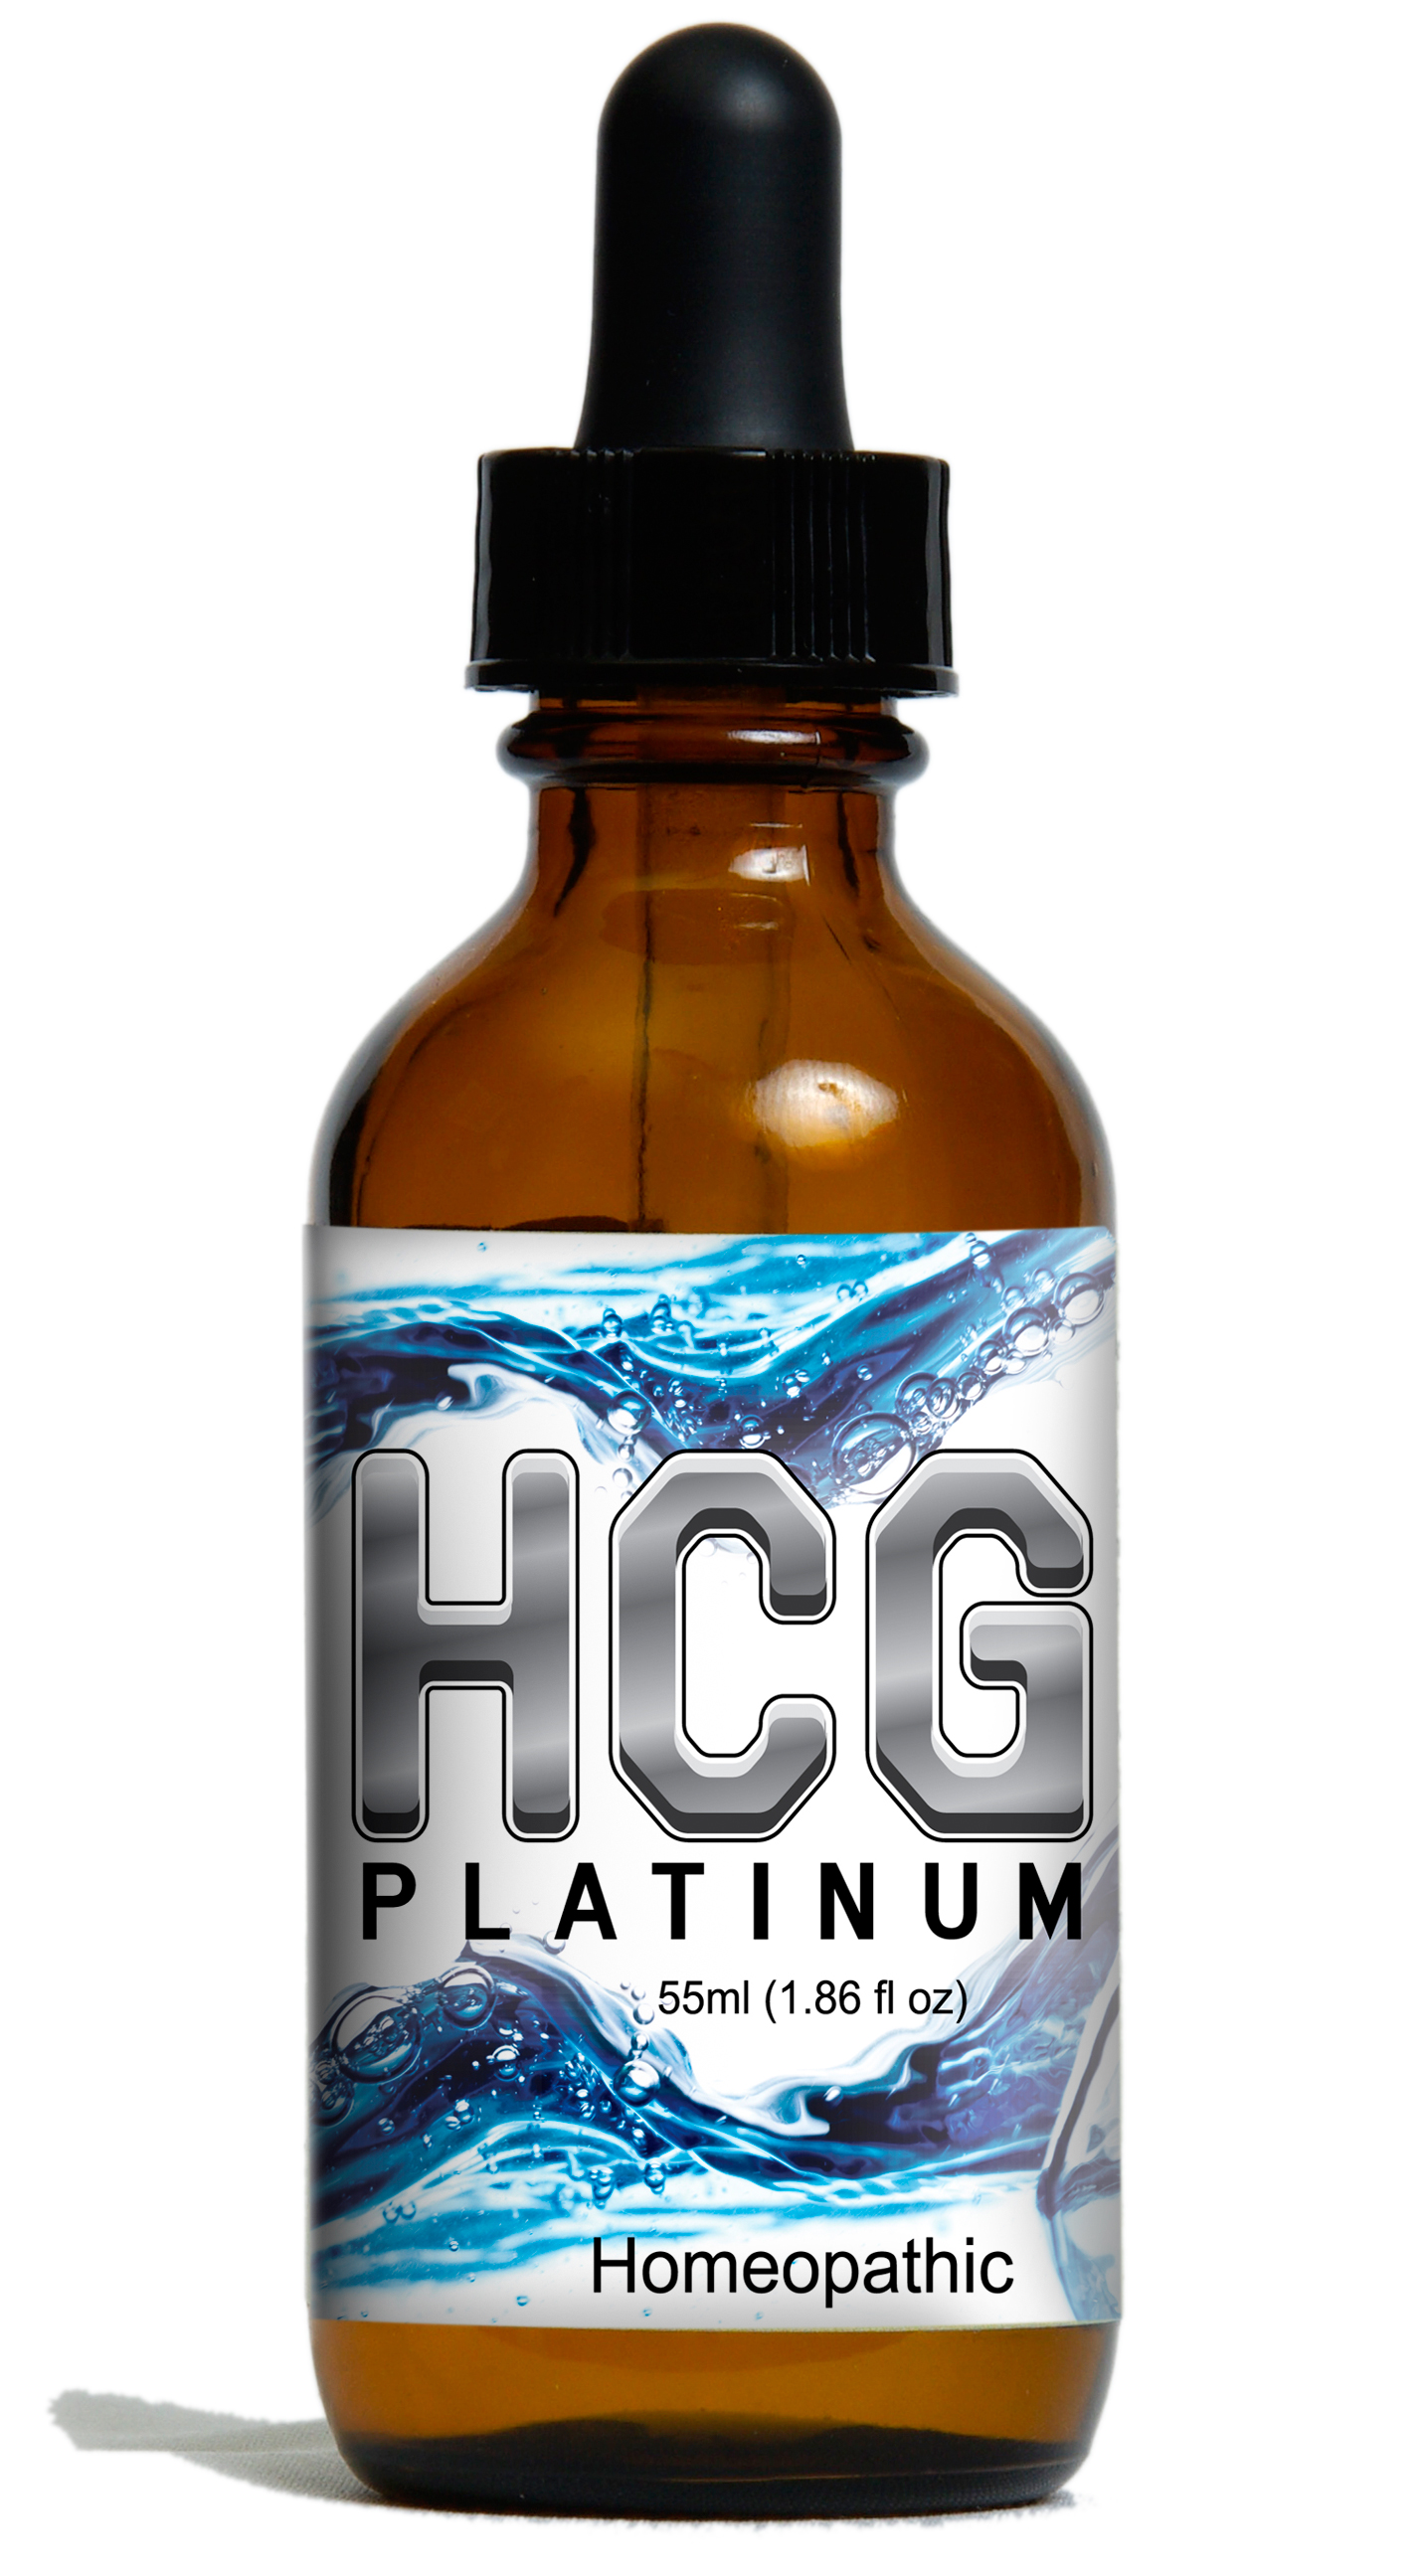 Hcg drops review